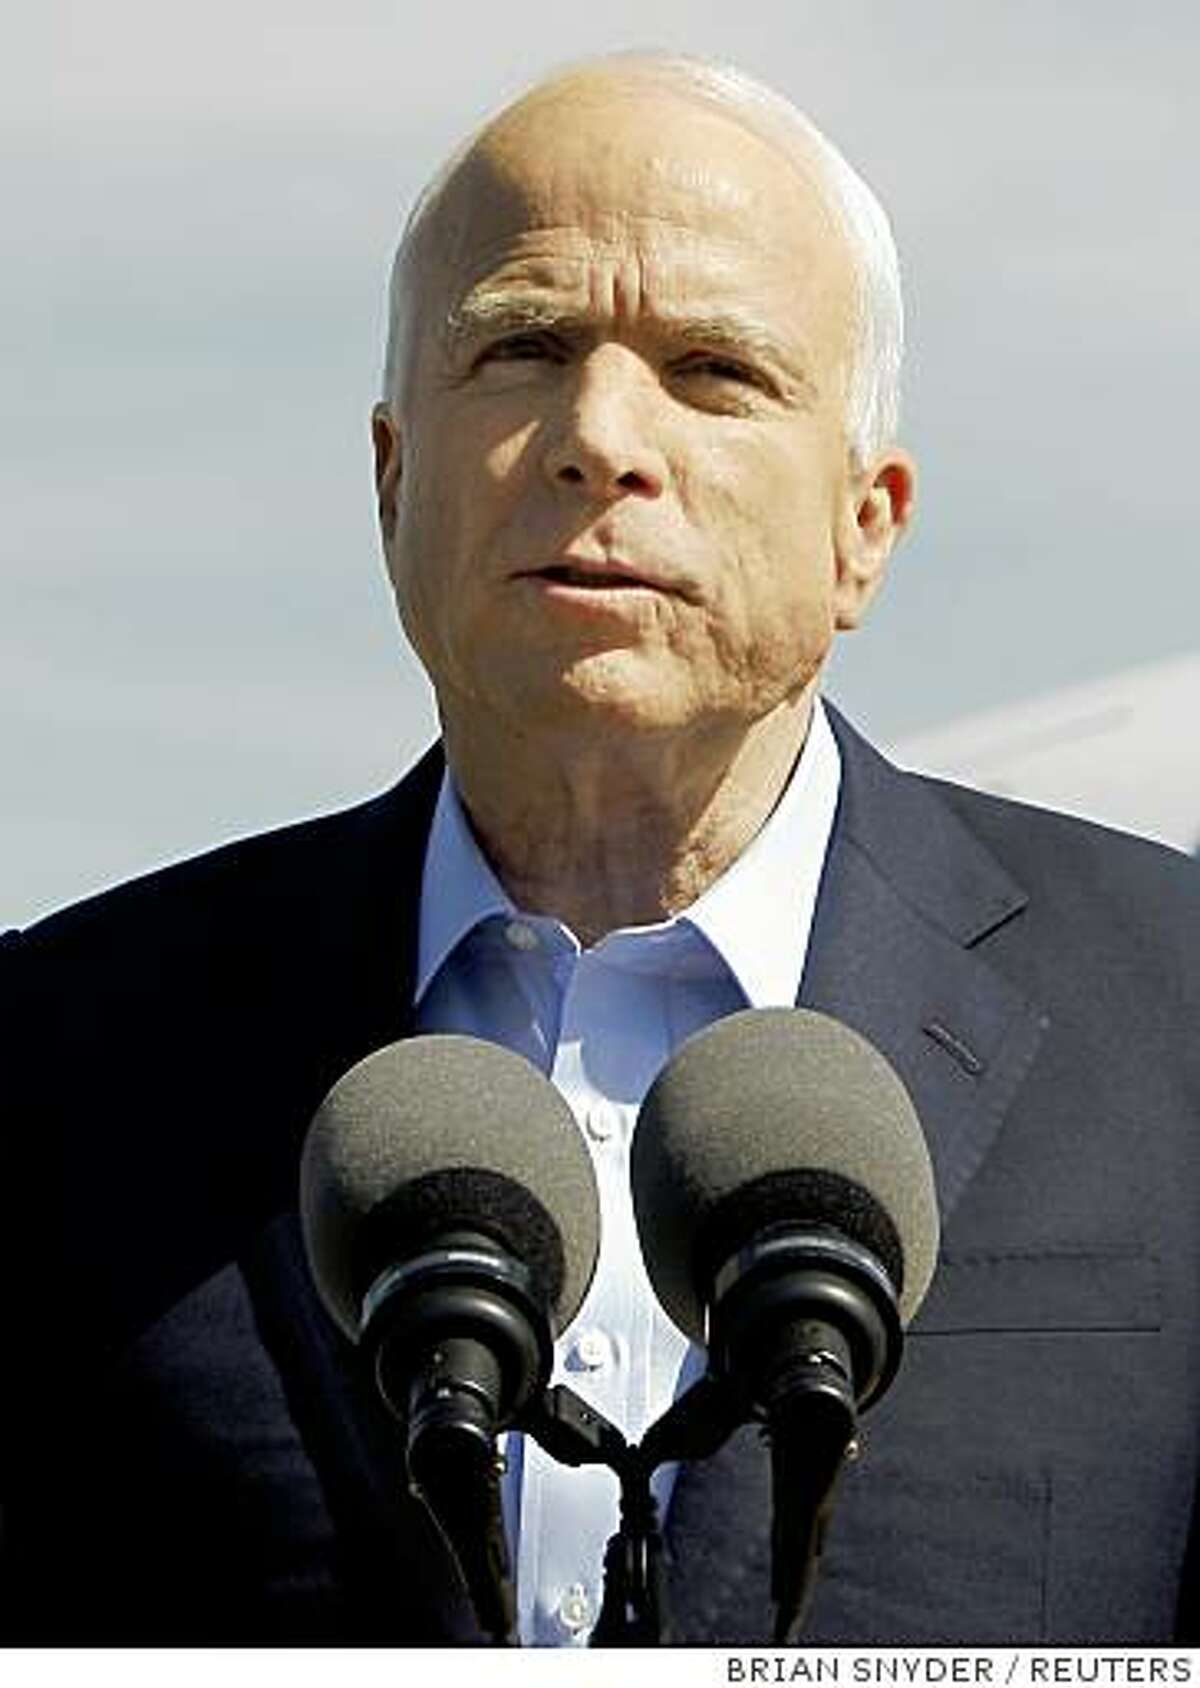 """U.S. Republican presidential nominee Senator John McCain (R-AZ) delivers a statement on the tarmac in Flagstaff, Arizona October 3, 2008 about the passage of the Wall Street bailout bill. """"This rescue bill isn't perfect. It's an outrage that it's even necessary,"""" the Arizona senator told reporters. REUTERS/Brian Snyder (UNITED STATES) US PRESIDENTIAL ELECTION CAMPAIGN 2008 (USA)"""